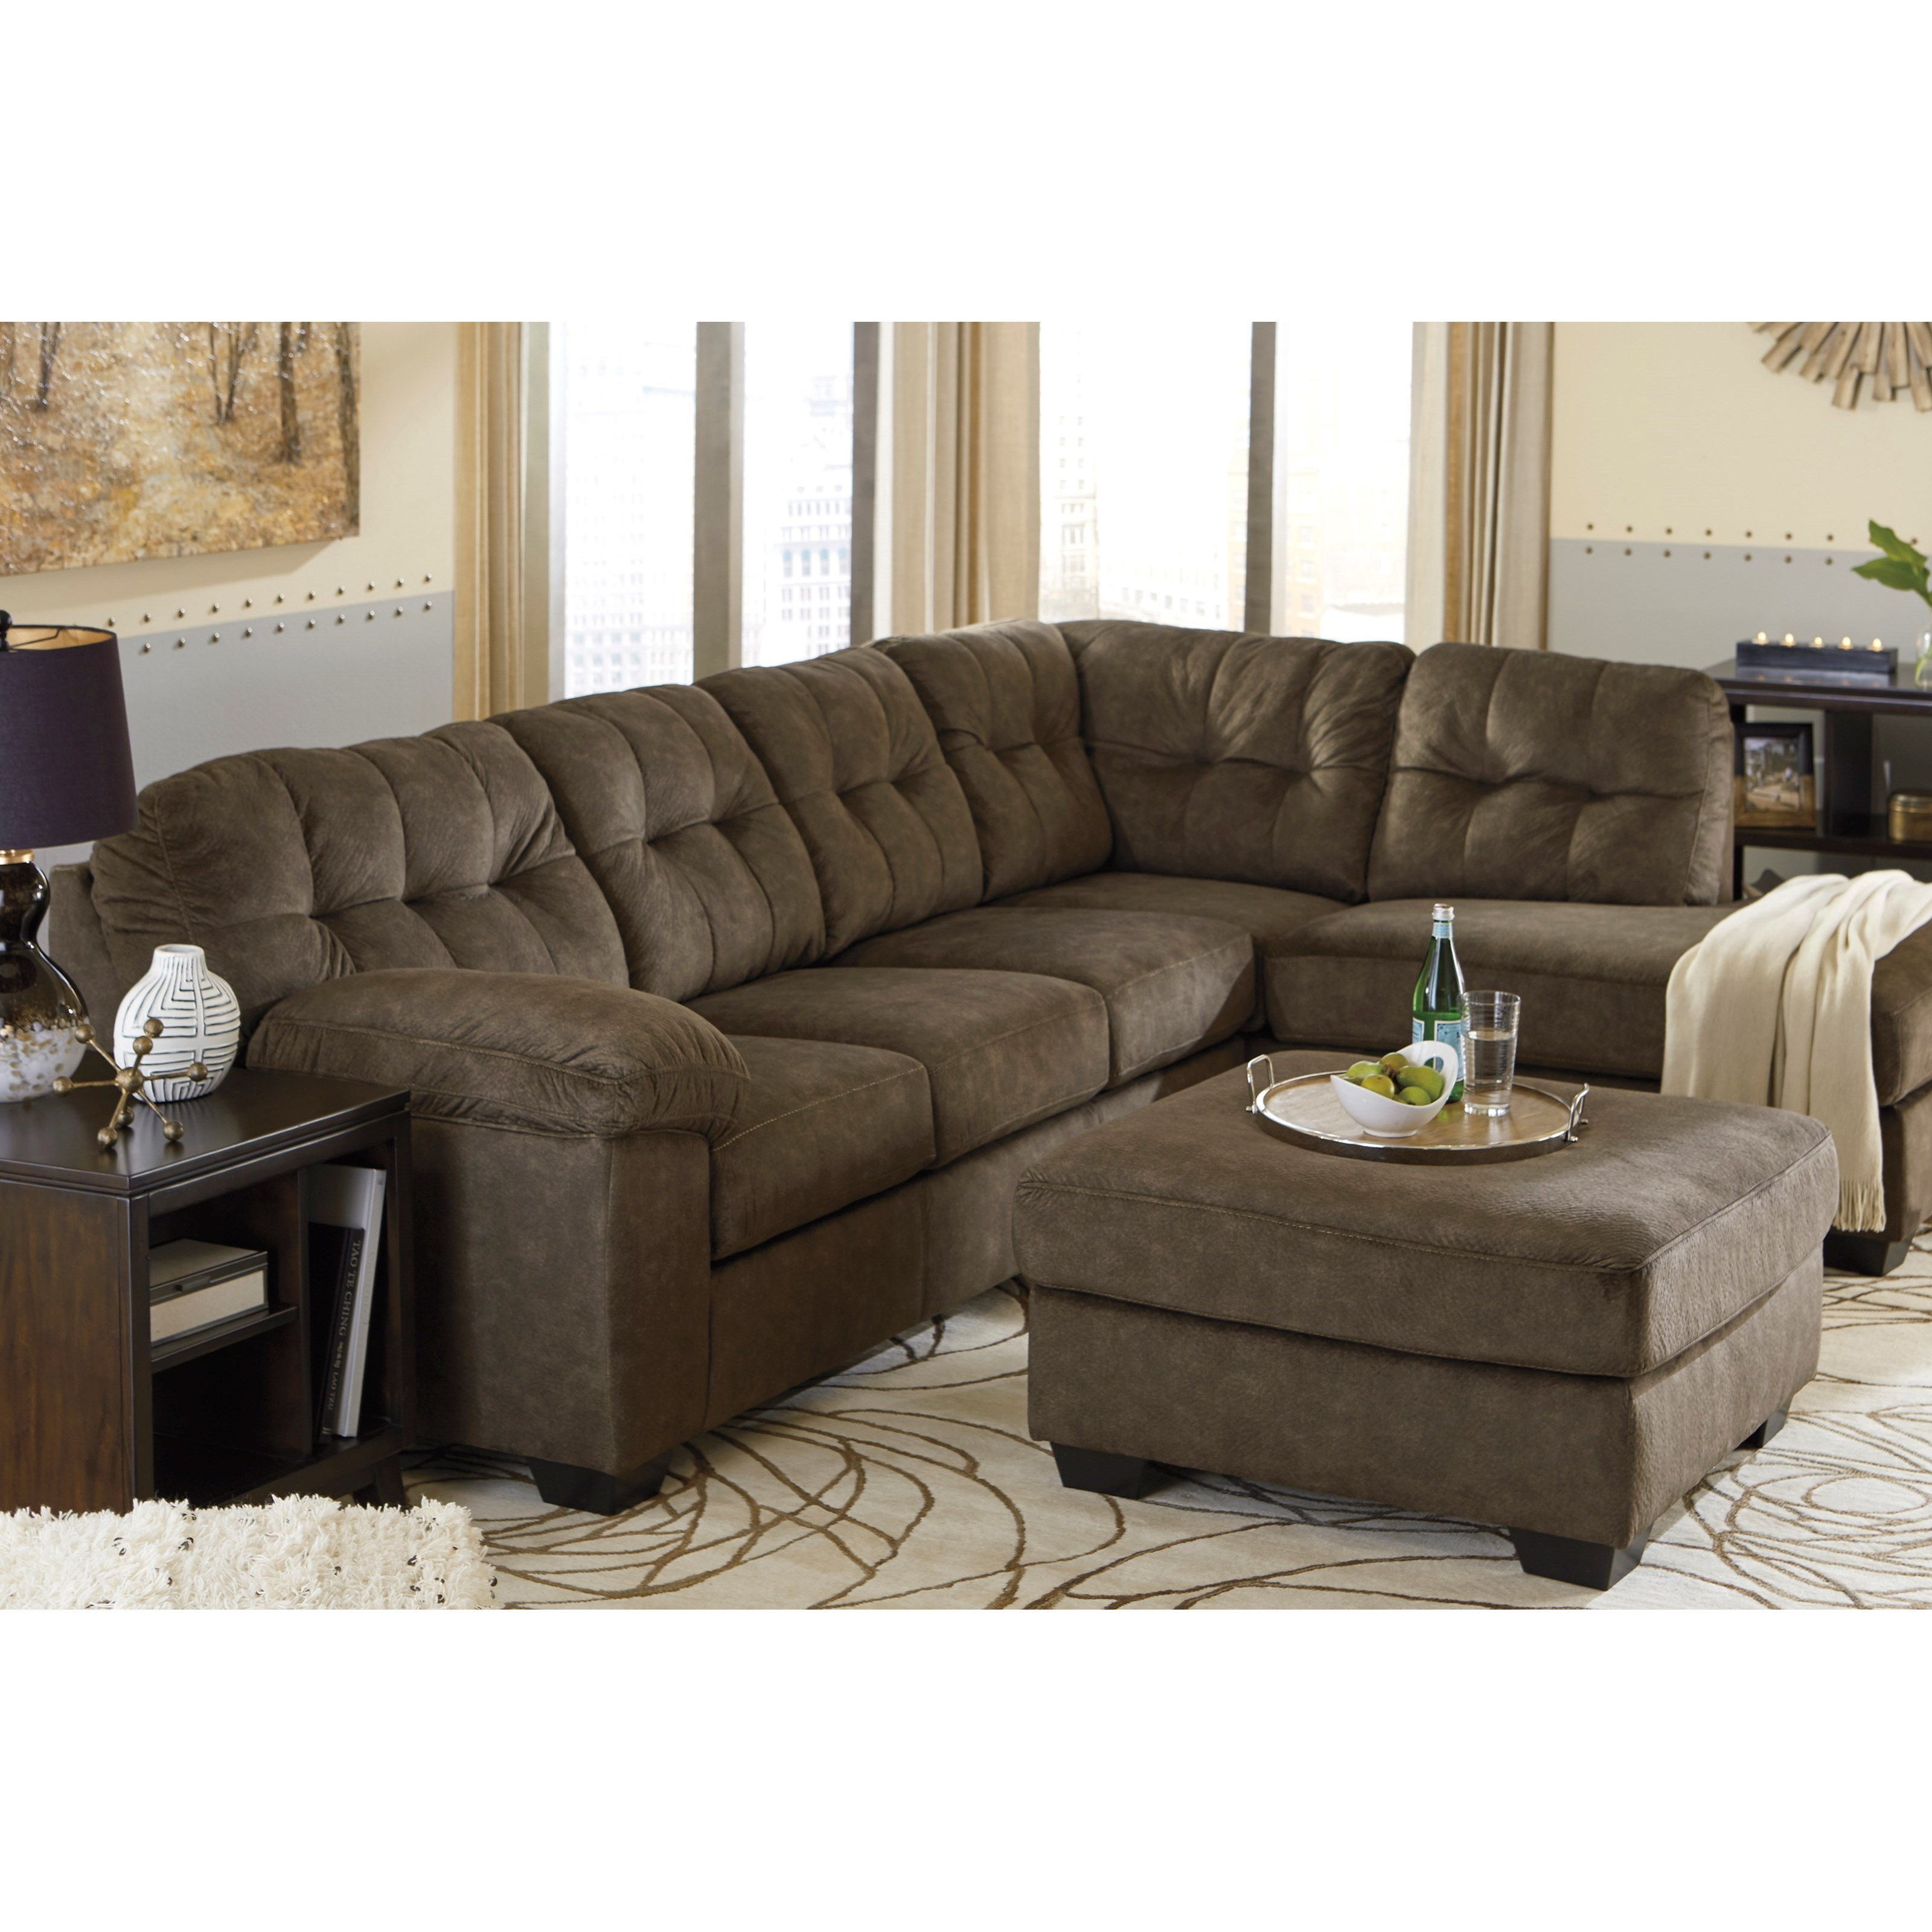 Ashley signature design accrington contemporary sectional for At home designs sedona leather chaise recliner